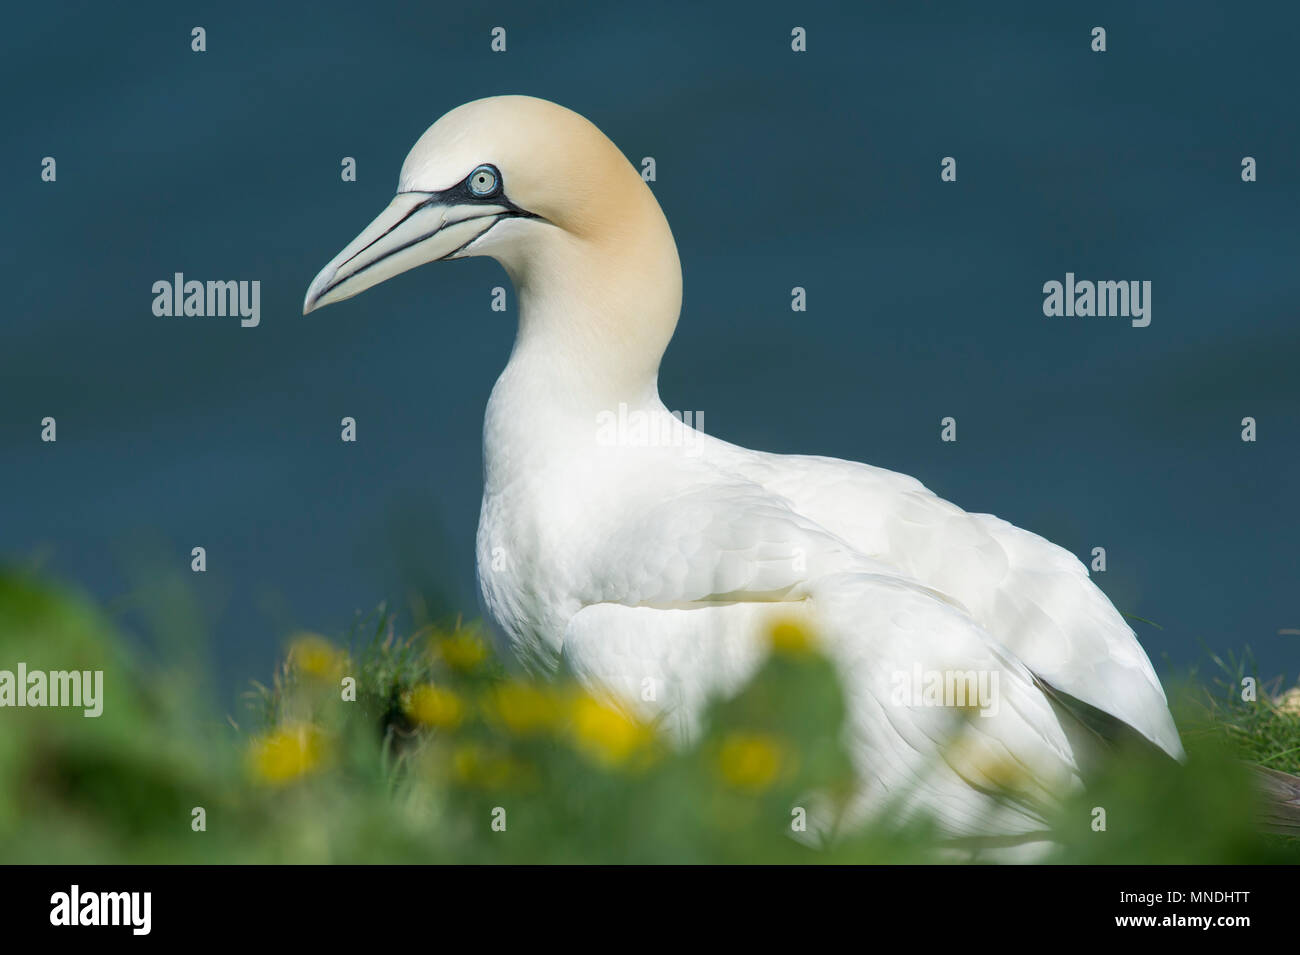 A Gannet (Morus Bassanus) surrounded by flowers on the cliff tops at RSPB Bempton Cliffs on the East Yorkshire coast. - Stock Image